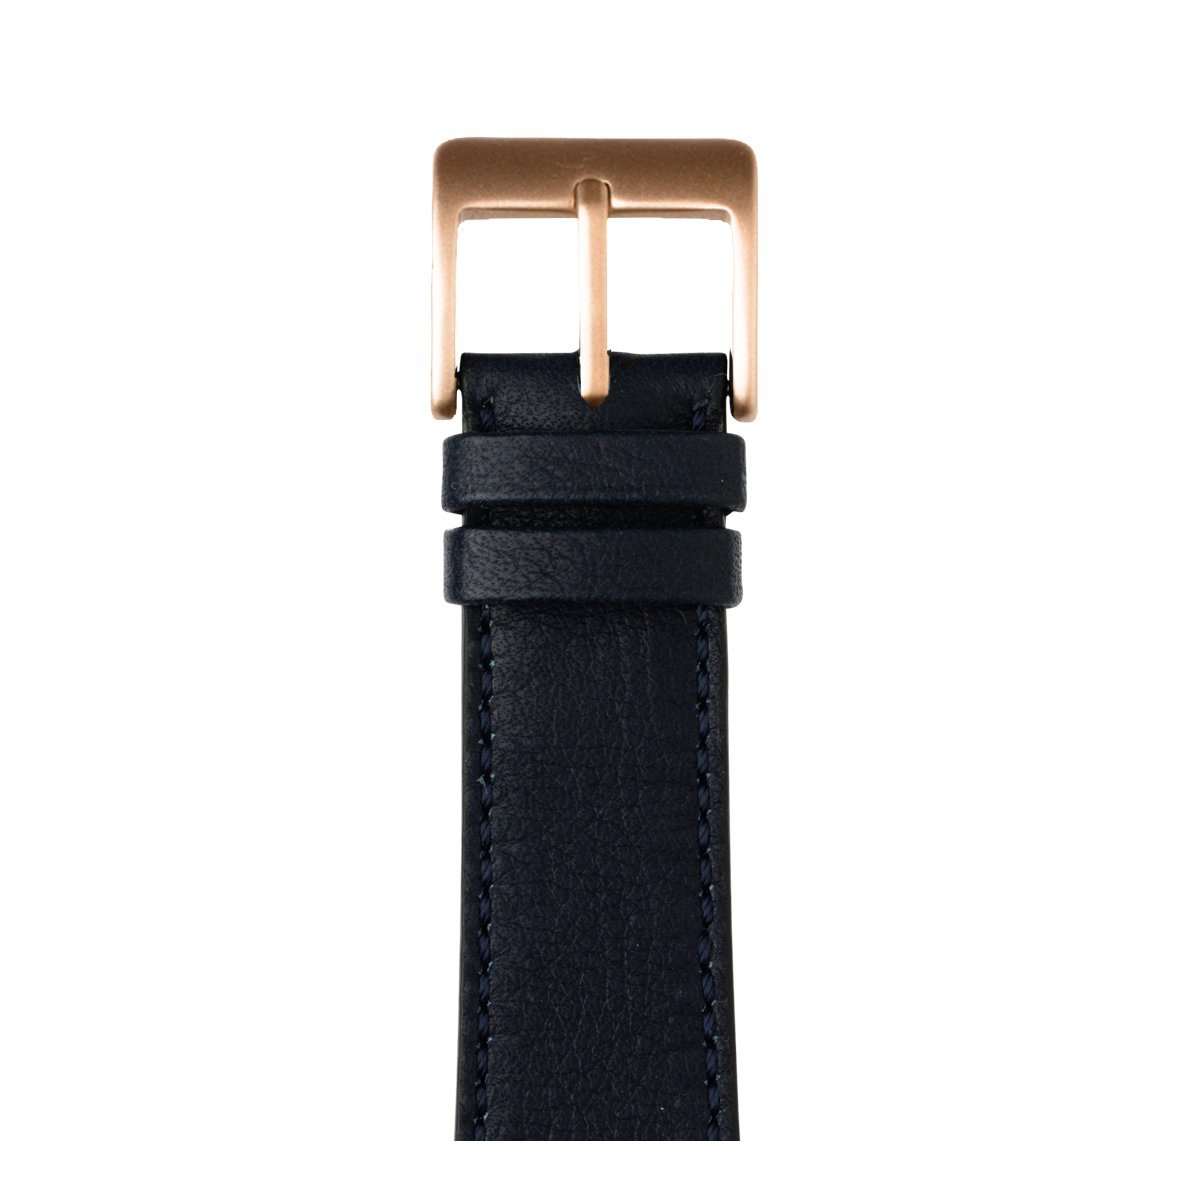 Roobaya | Premium Sauvage Leather Apple Watch Band in Dark Blue | Includes Adapters matching the Color of the Apple Watch, Case Color:Rose Gold Aluminum, Size:38 mm